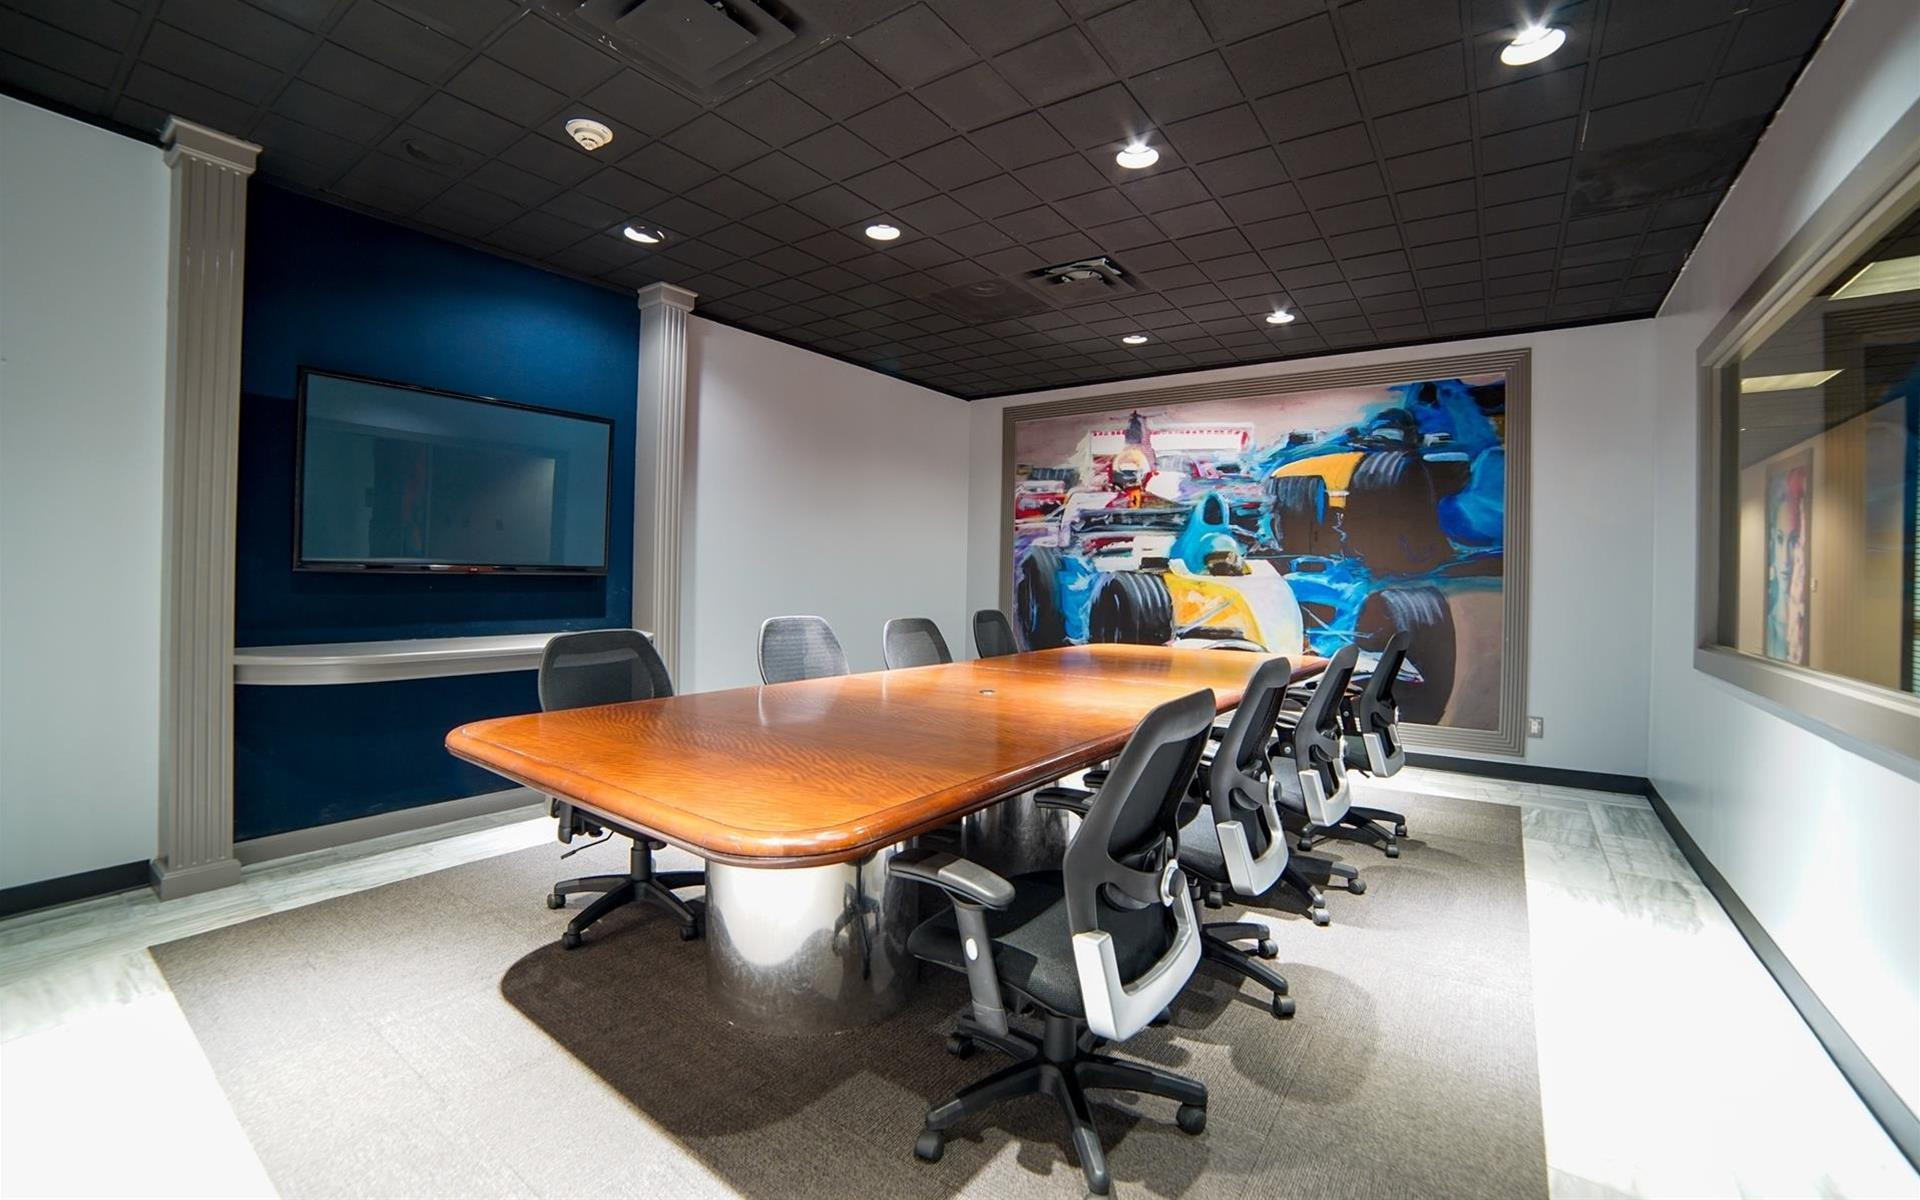 One of our favorite fast meeting rooms